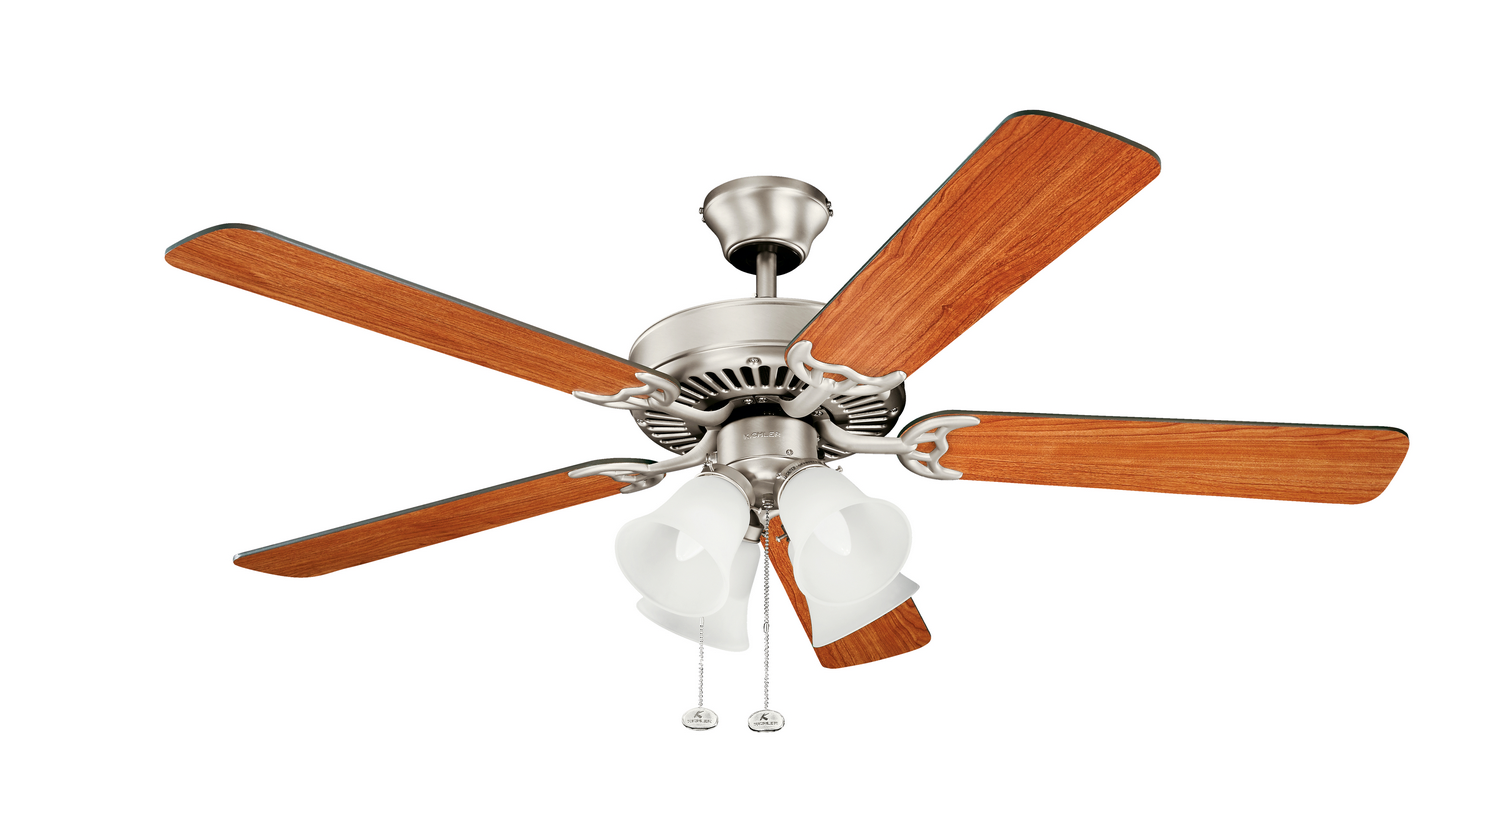 52 inchCeiling Fan from the Basics collection by Kichler 402NI7